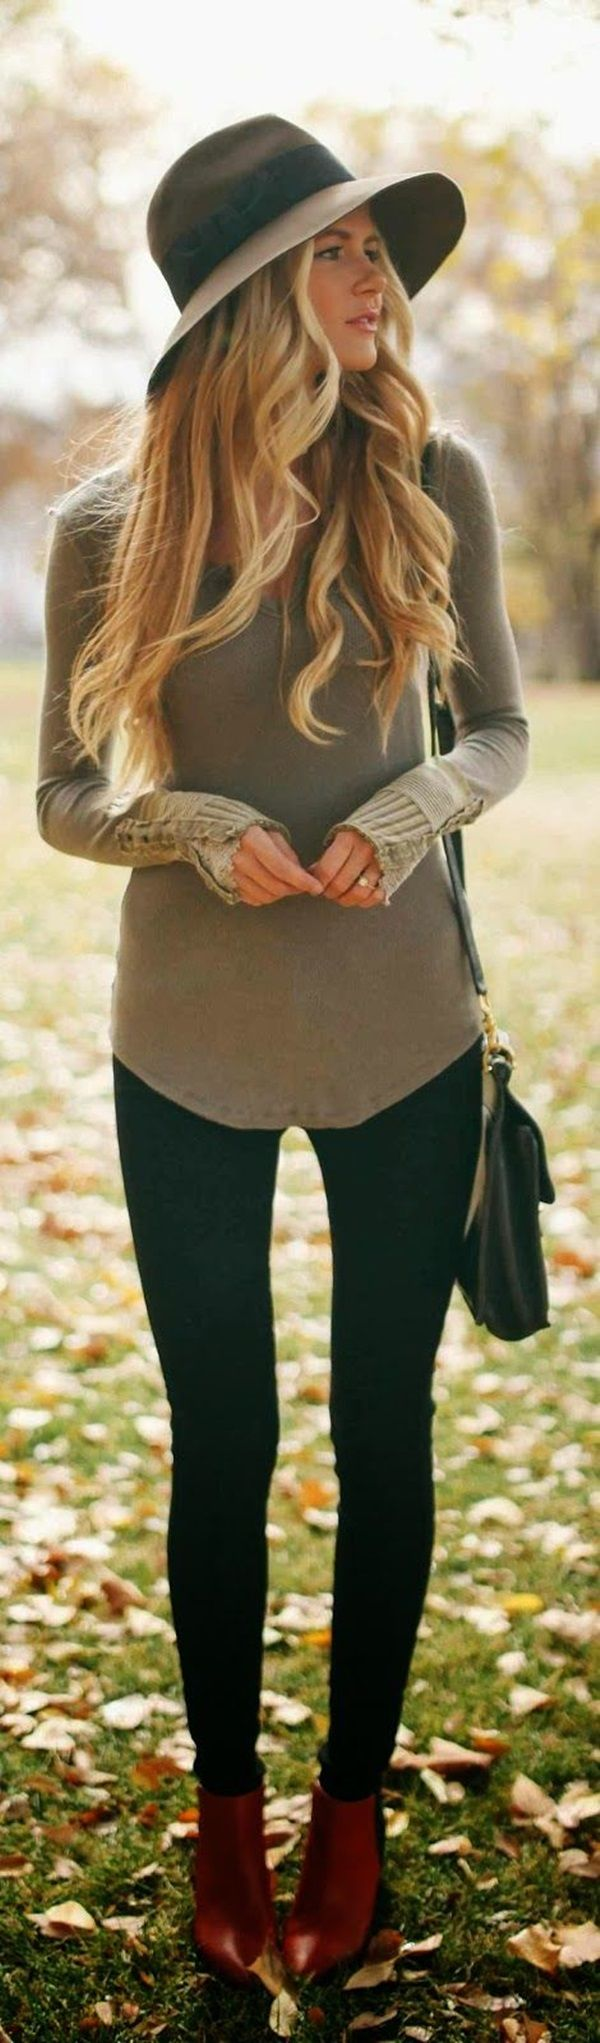 160 best fashion images on pinterest | autumn, beautiful and clothing